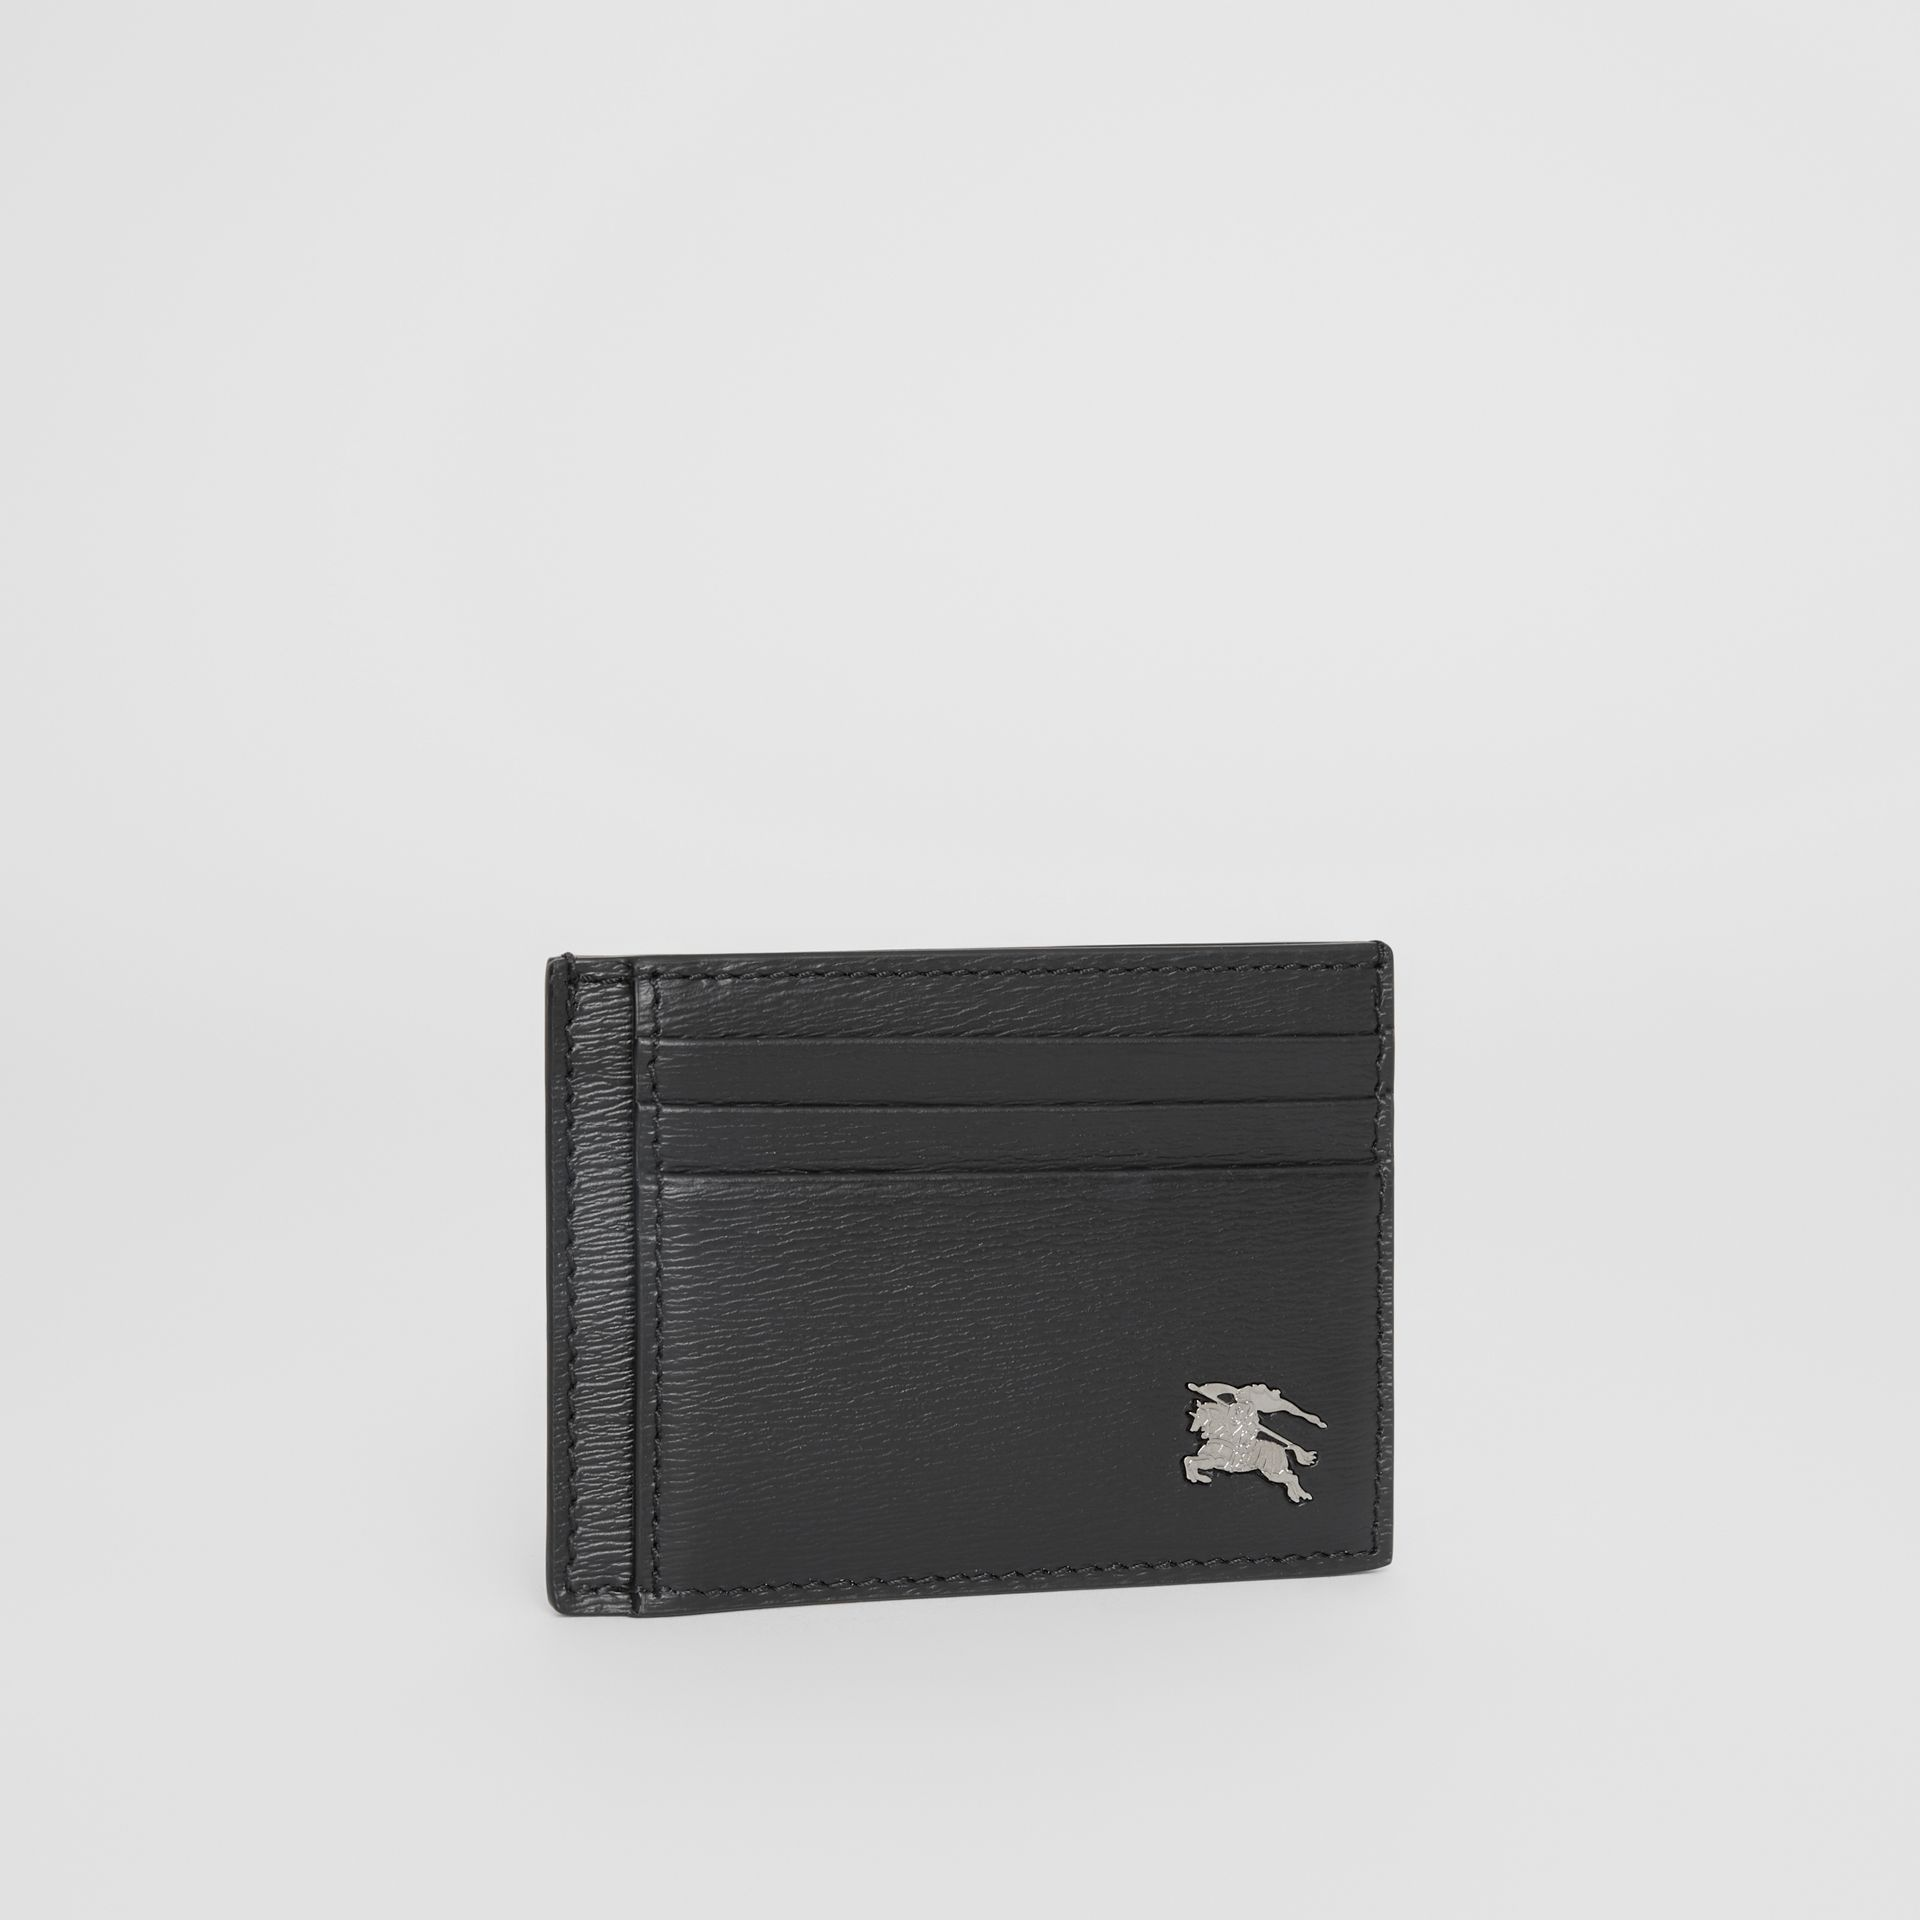 London Leather Money Clip Card Case in Black - Men | Burberry United States - gallery image 3